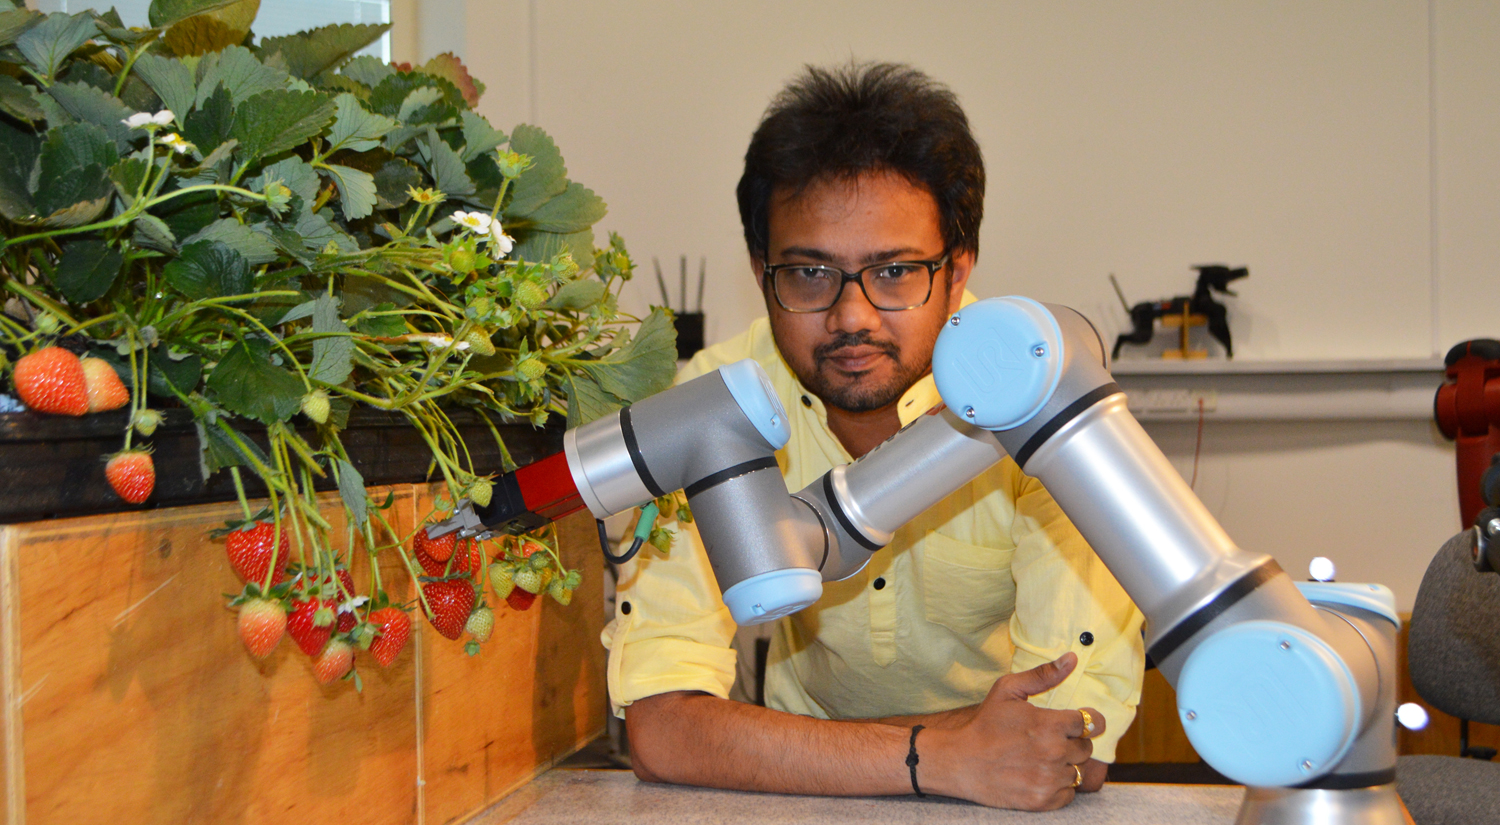 A robot arm in silver and pale blue is reaching towards some strawberries on stems hanging over the edge of a wooden plant box. Dr Vishu Mohan, from the School of Computer Science and Electronic Engineering, is sitting behind the robotic arm, leaning forward with his arms resting on the table.